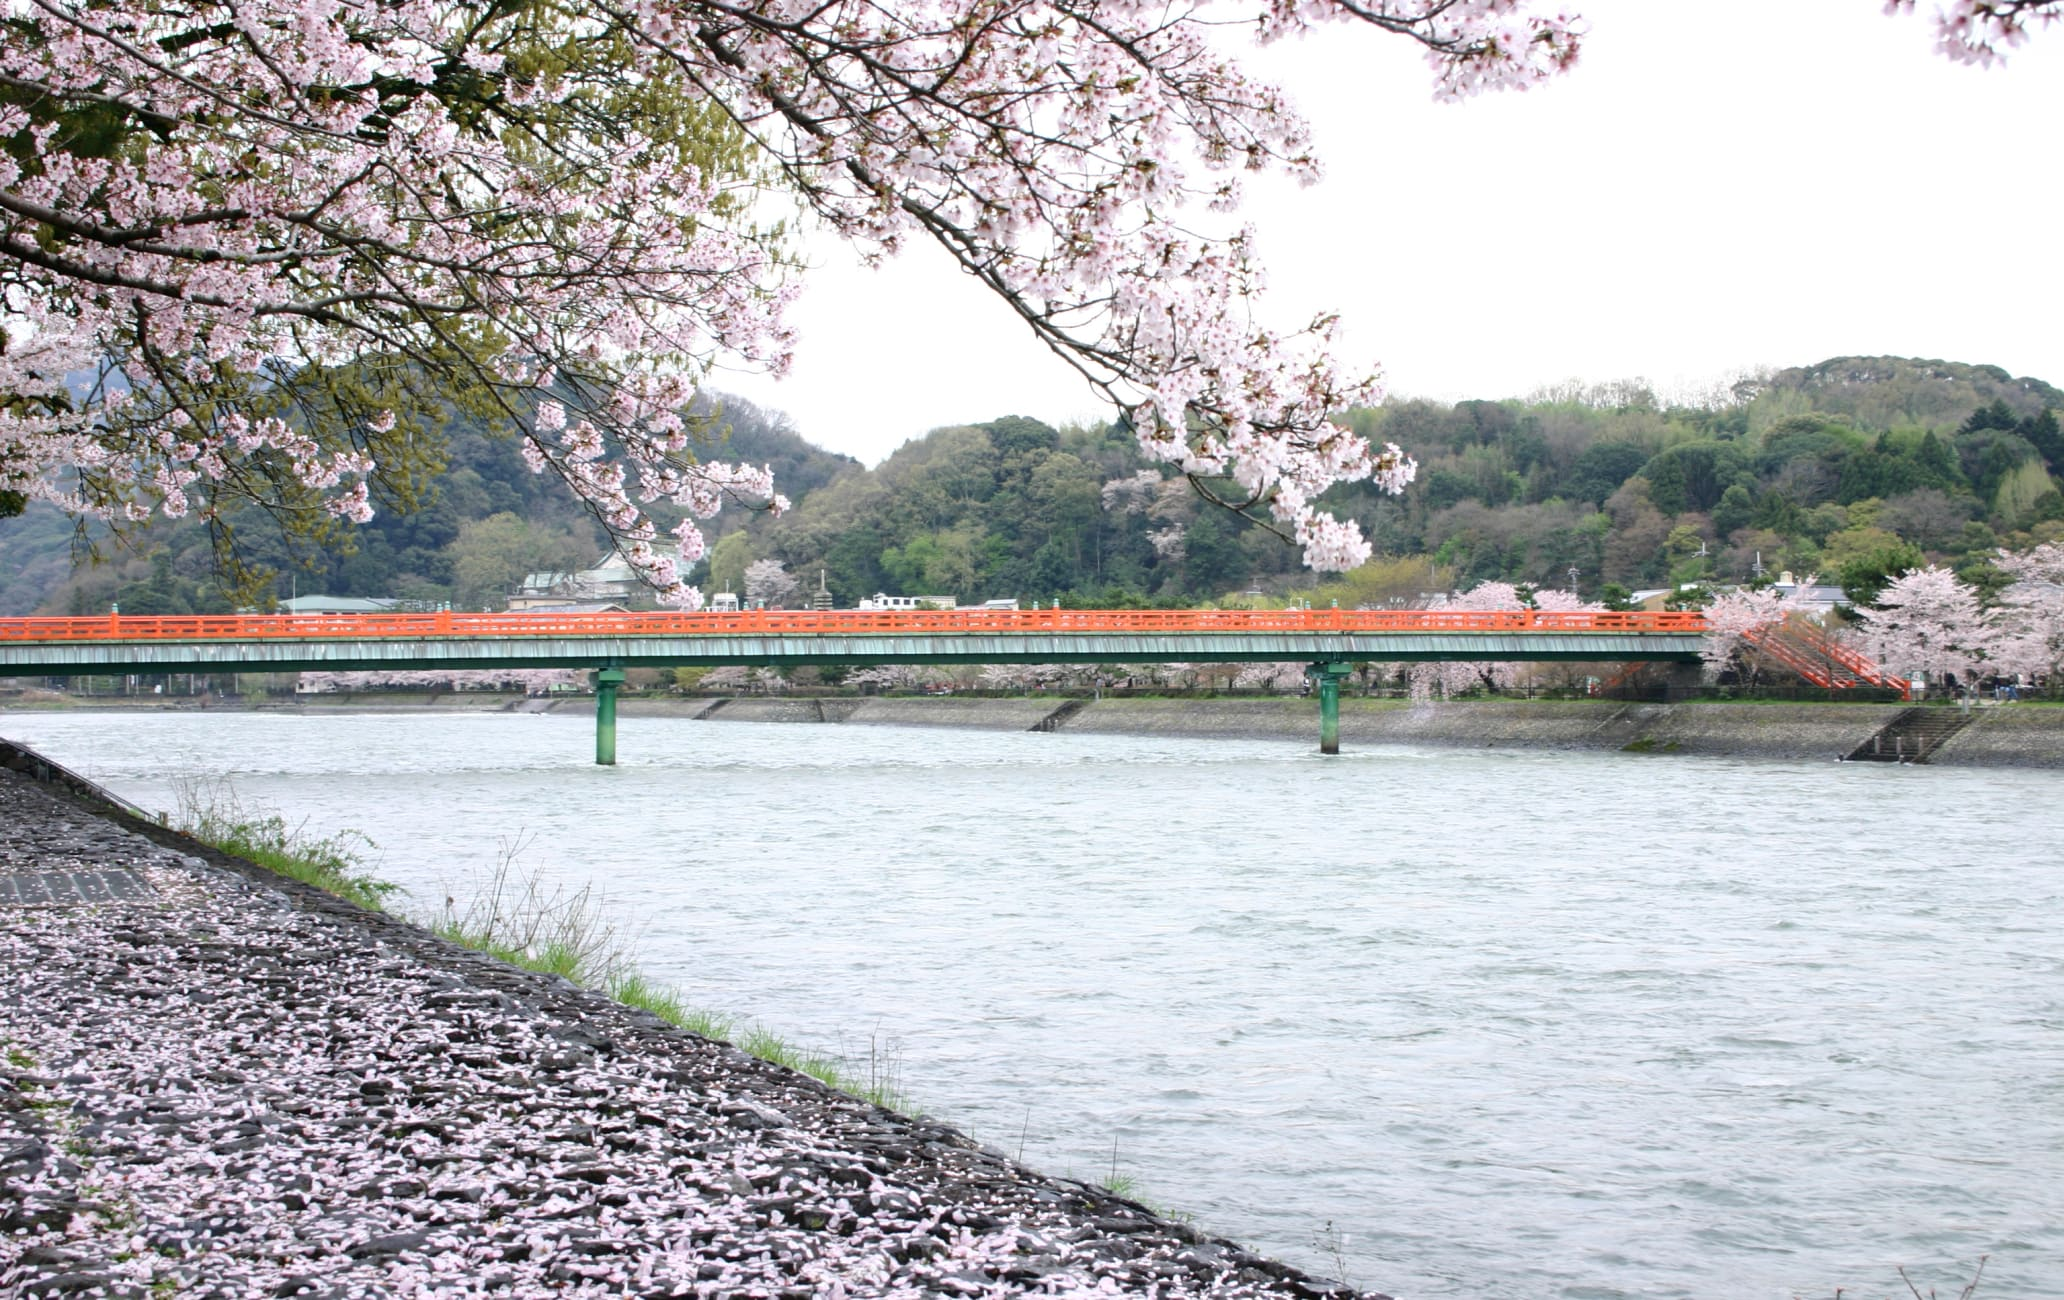 the upper stream of Uji Bridge